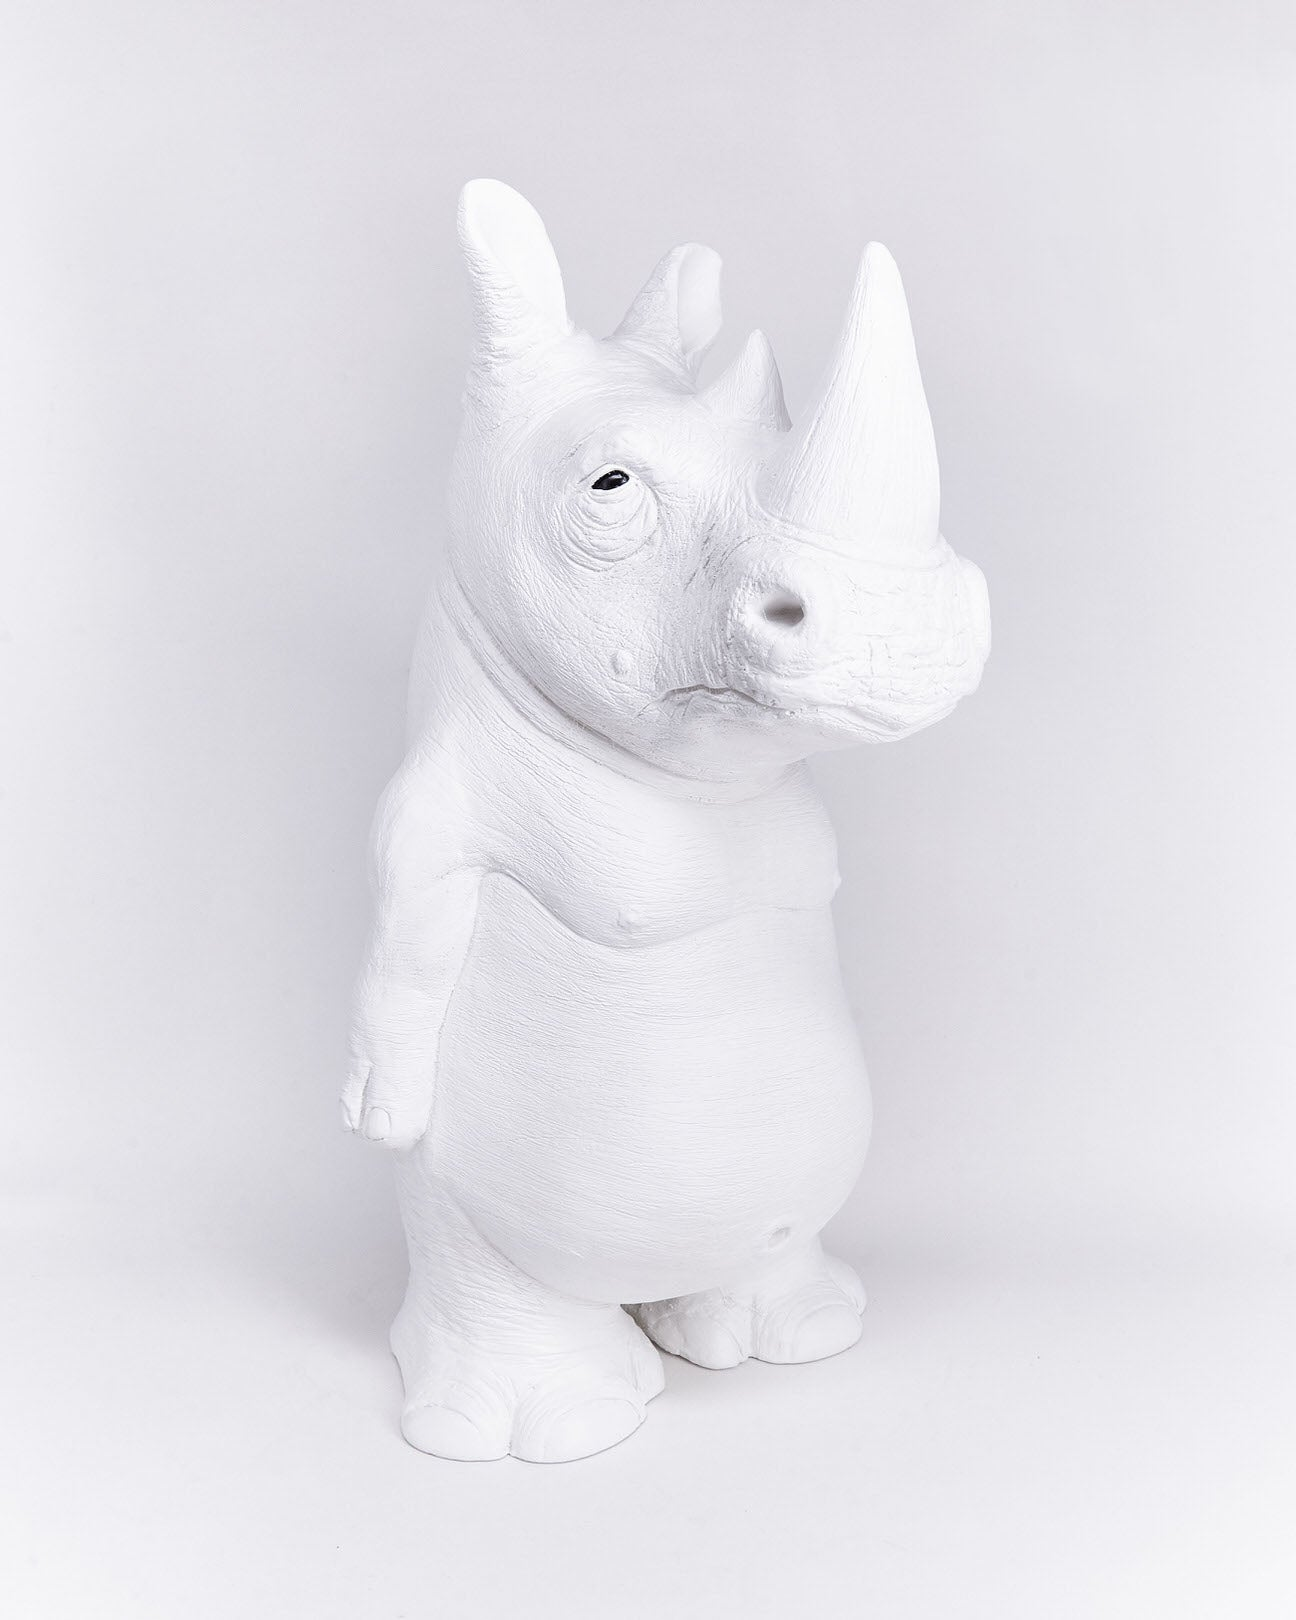 Rhino-ceramic-animal-Right-object-handmade-Ornamante-localdesigner-Nuovum-barcelona